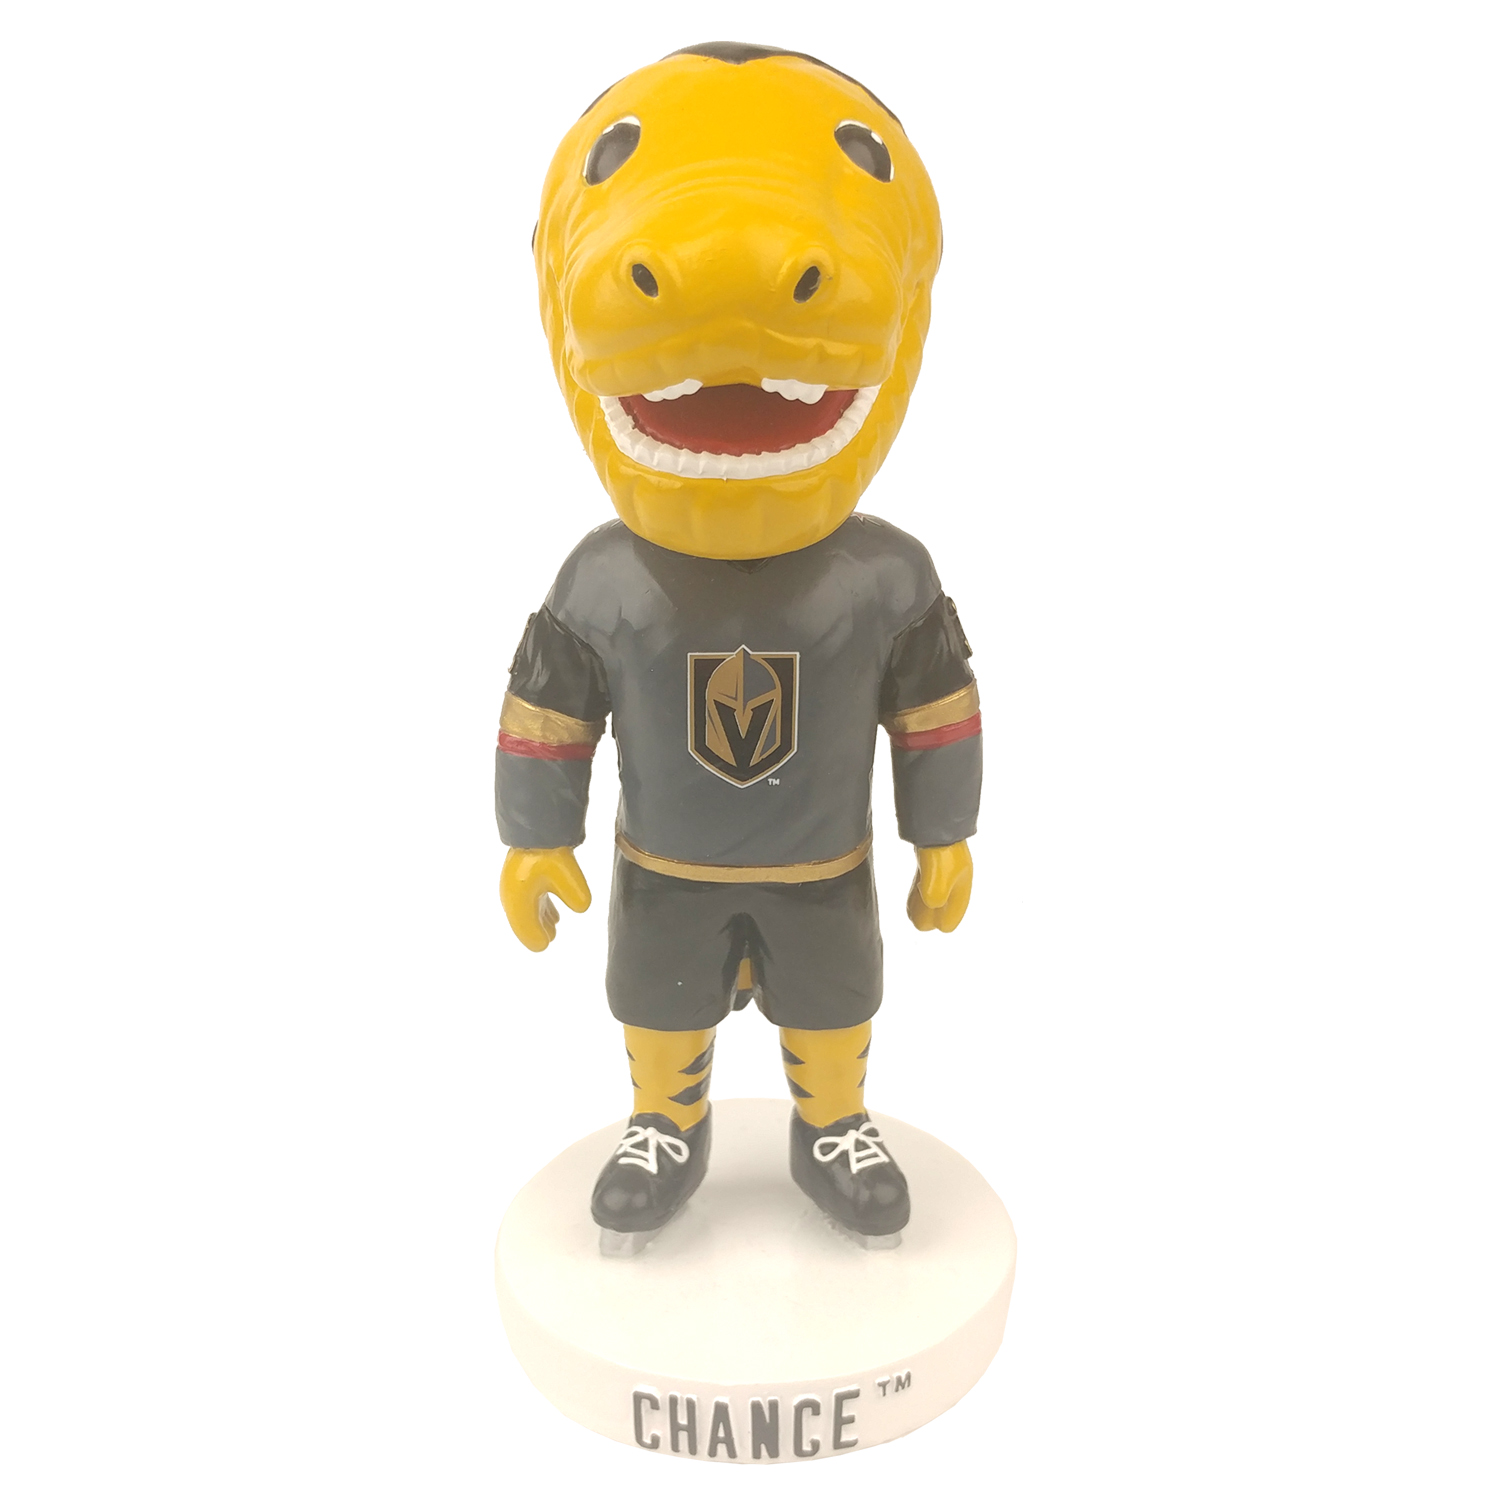 CHANCE ™: The Golden Knights ® Mascot Bobblehead Gallery